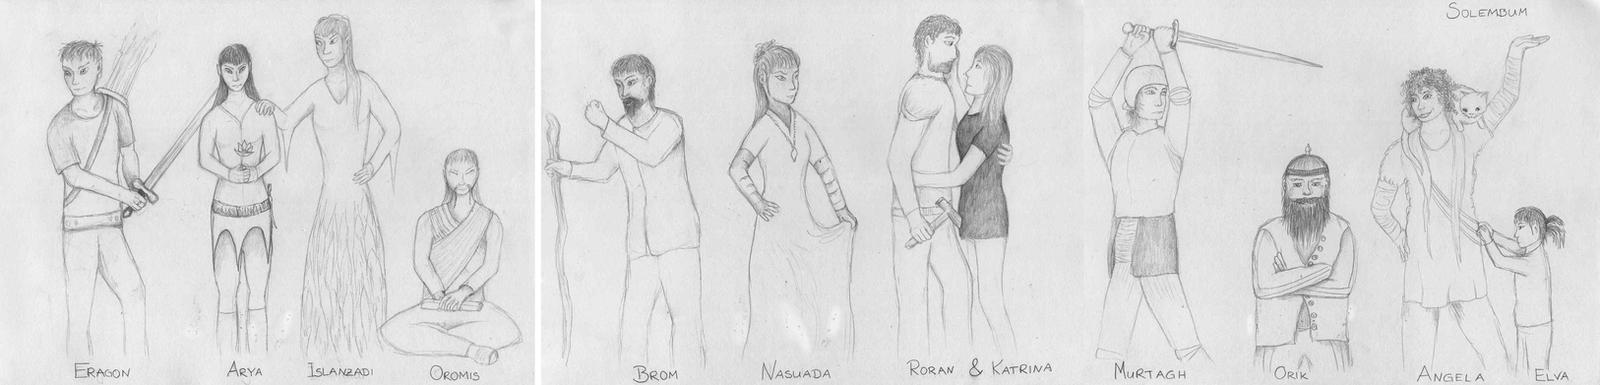 Eragon Book Characters My Eragon Character designs by